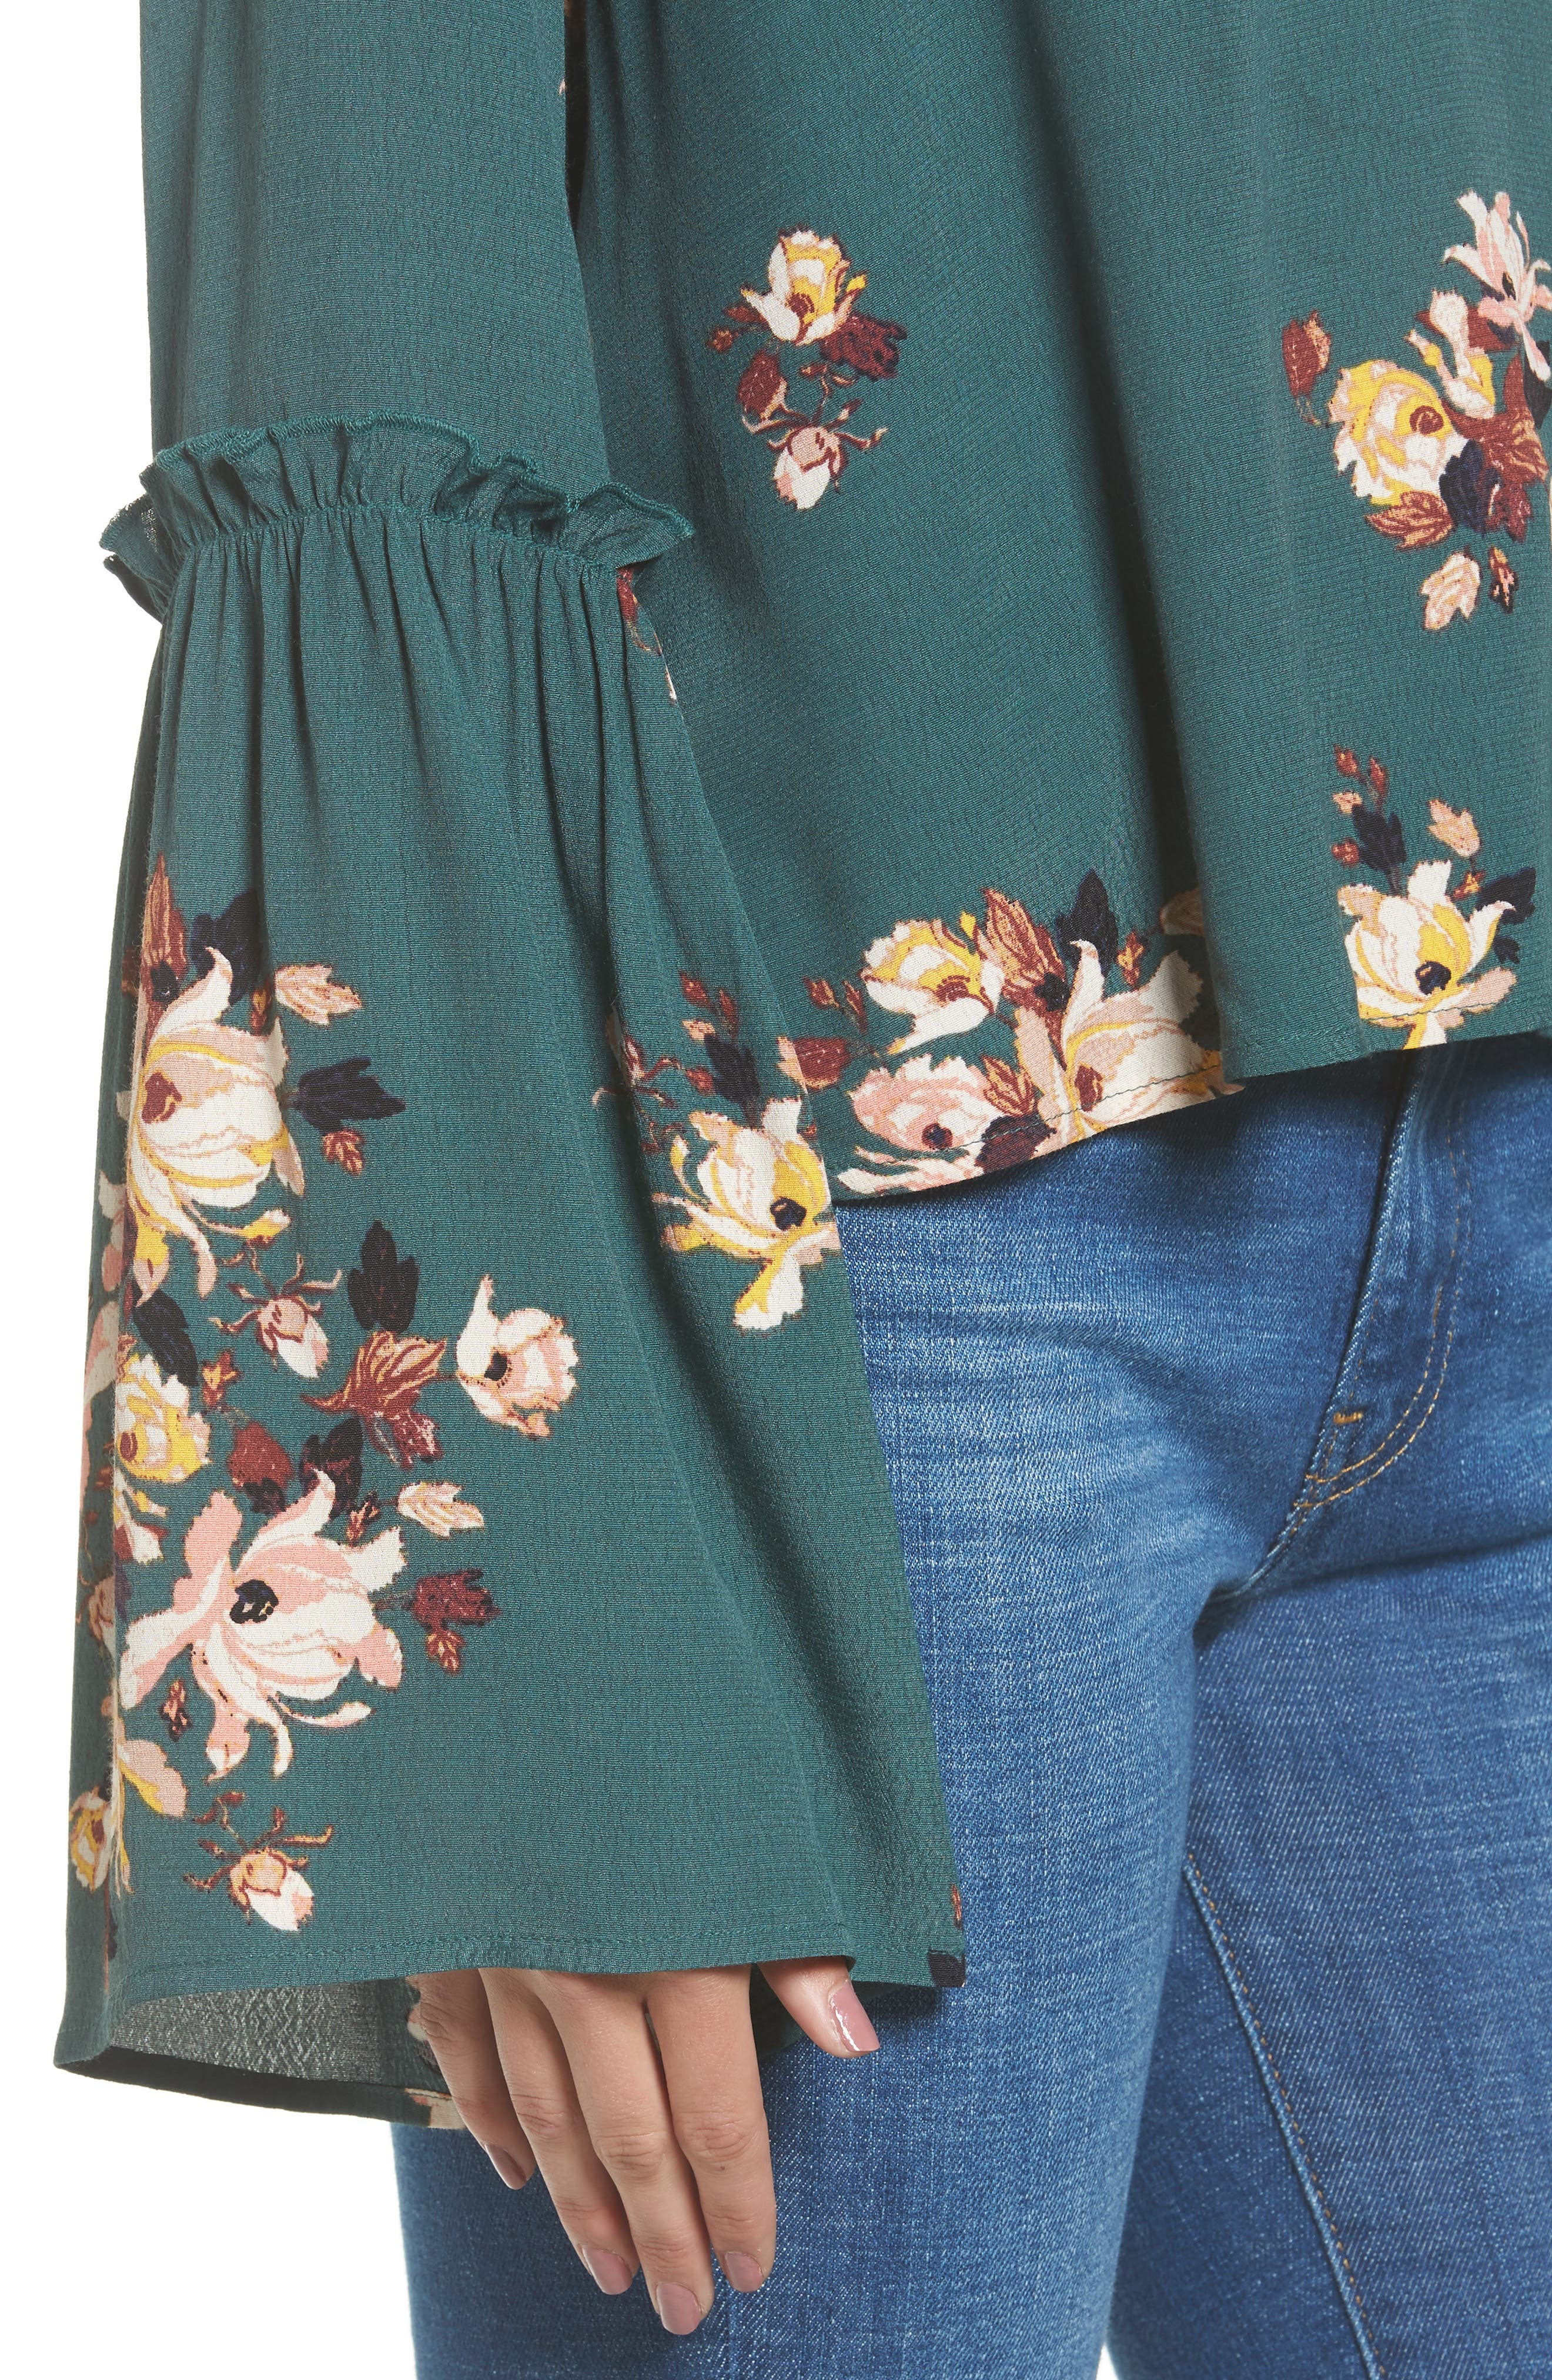 Bell Sleeve Blouse,                             Alternate thumbnail 4, color,                             Green Jungle Floral Bouquet